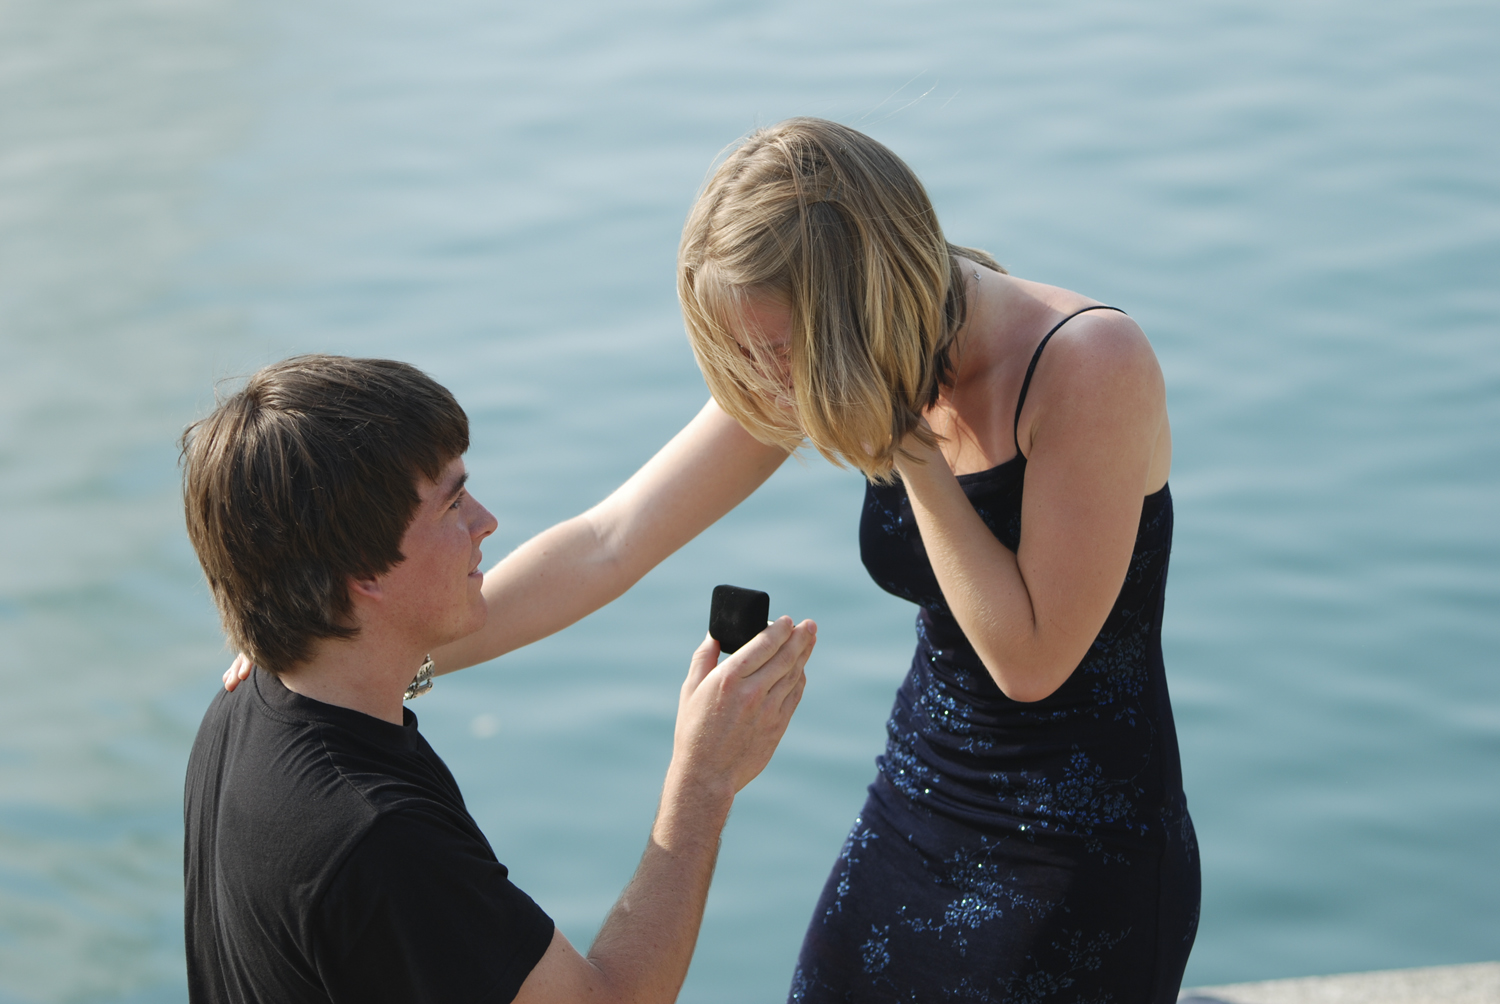 Engagement Proposal Pictures | City Center at Oyster Point in Newport News, Virginia